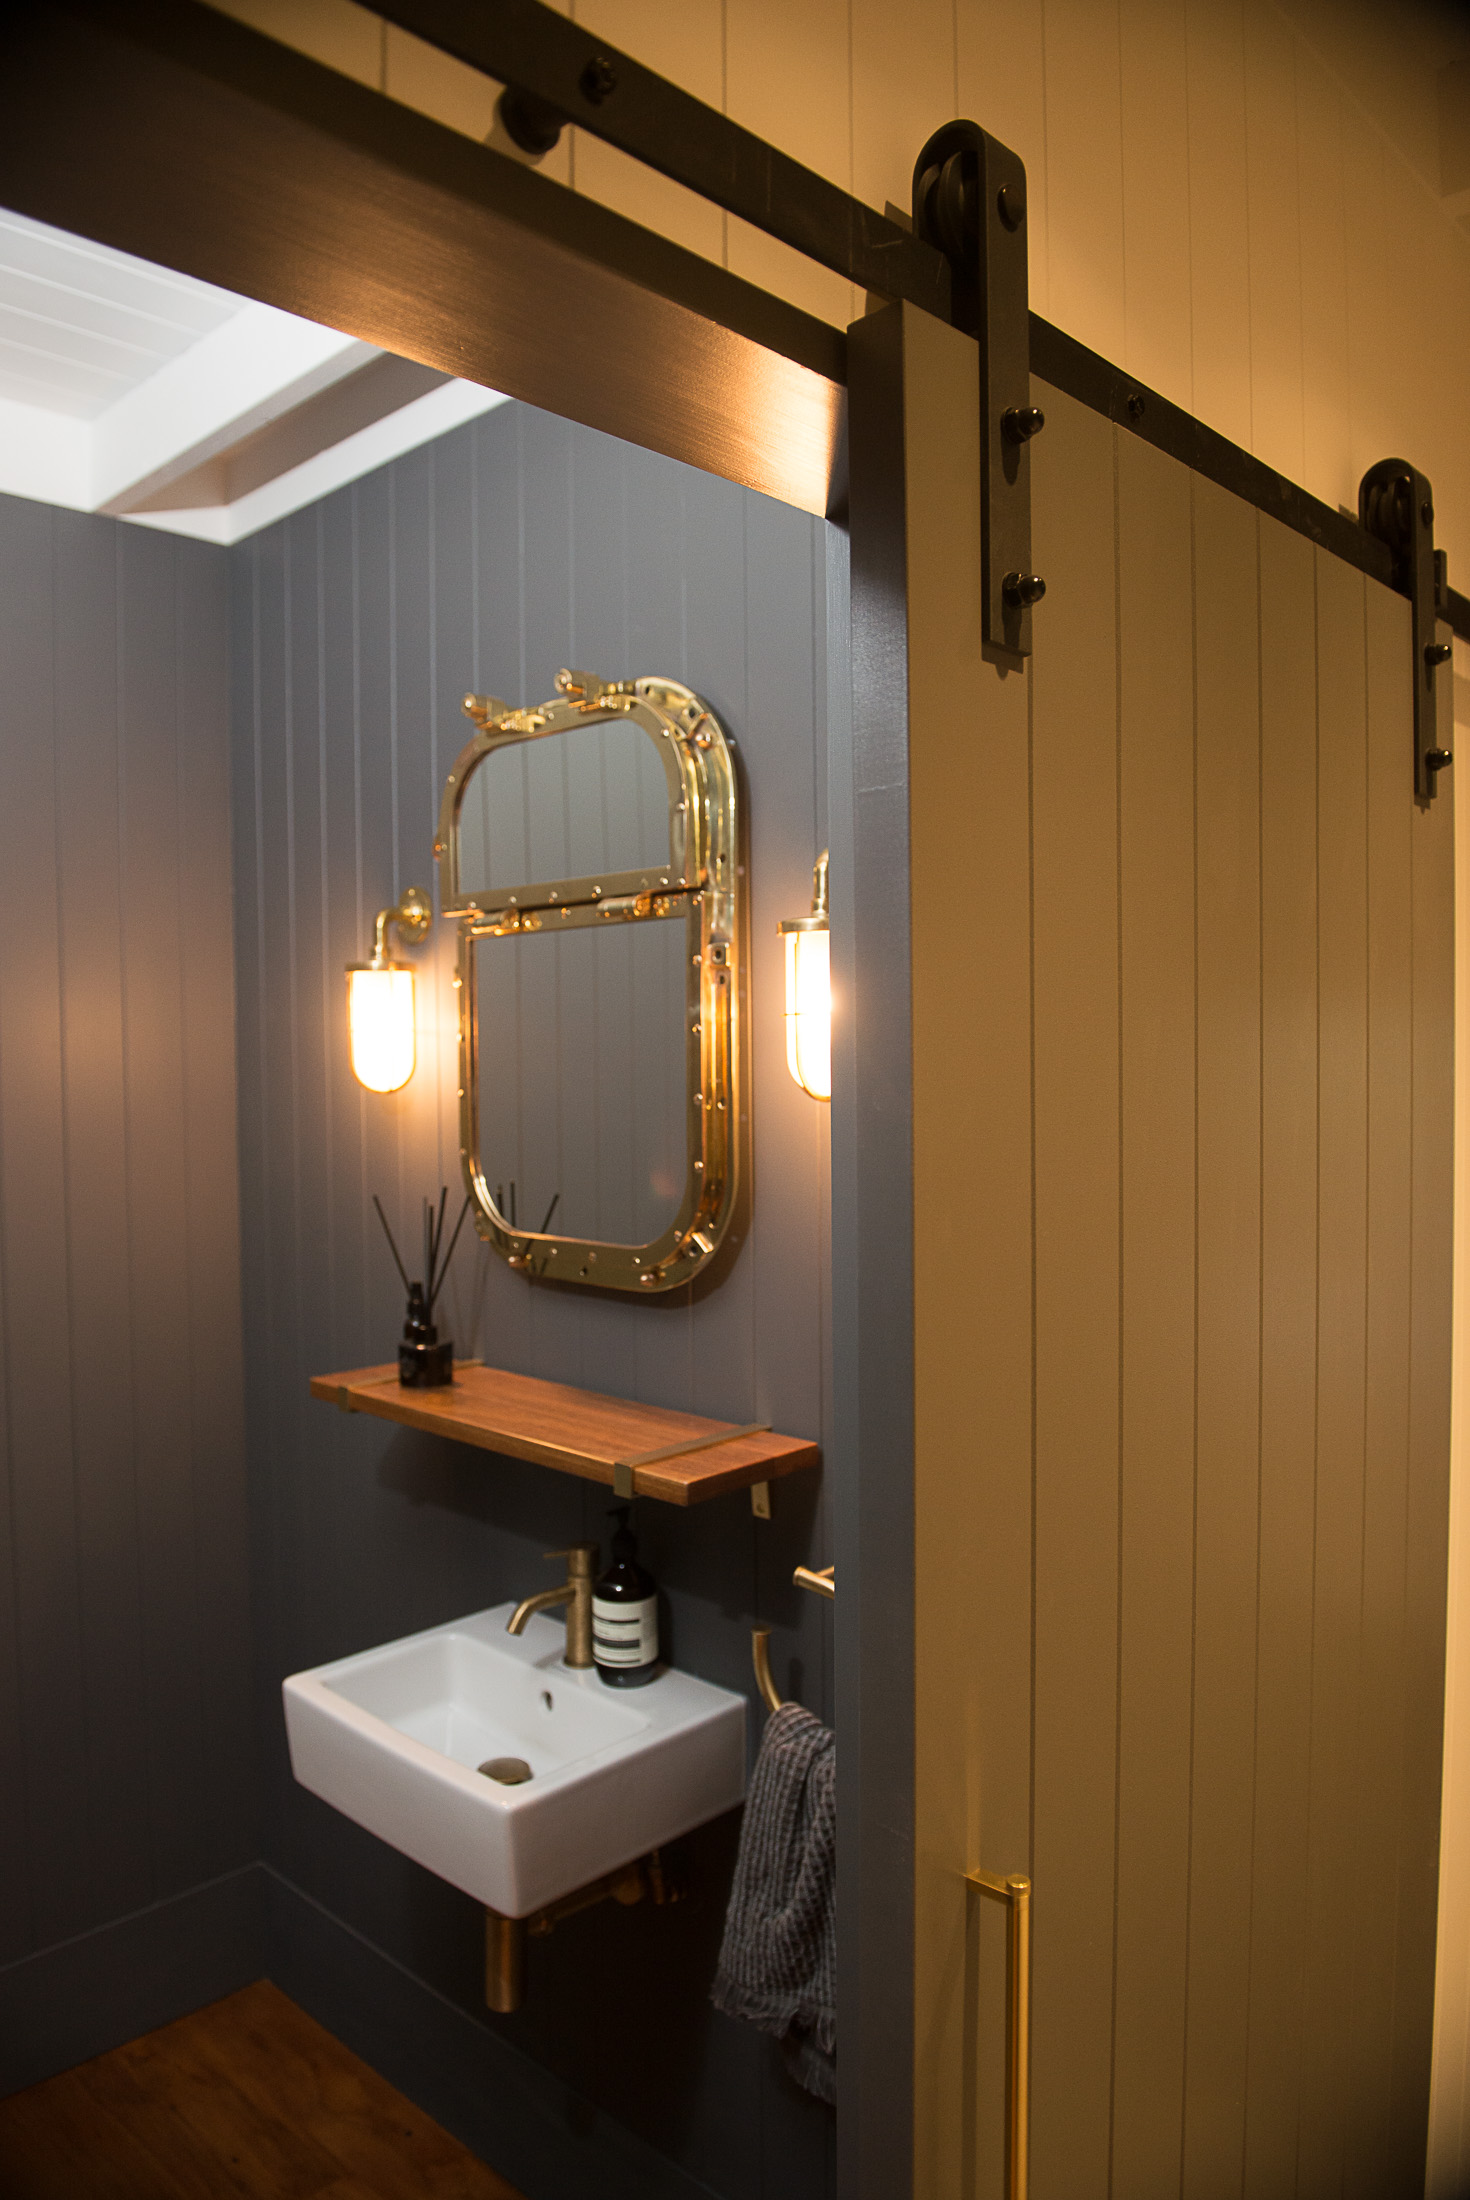 ZEAL wellington commerical interior fit out bathroom